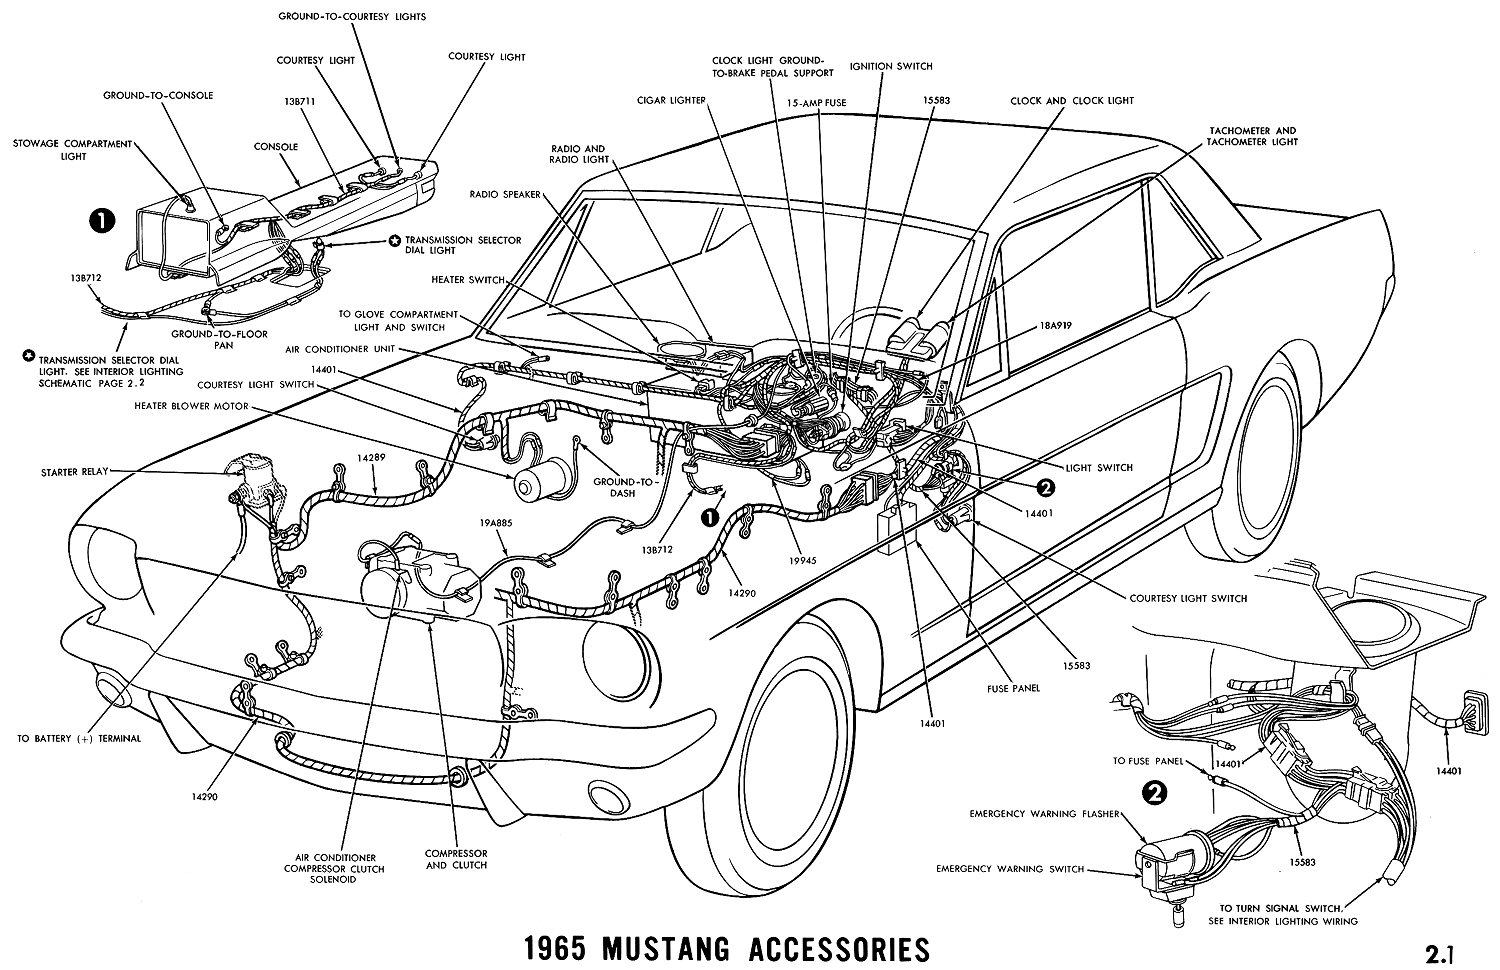 1965 Mustang Wiring Diagrams Average Joe Restoration Ford A Diagram Accessories Pictorial Or Schematic